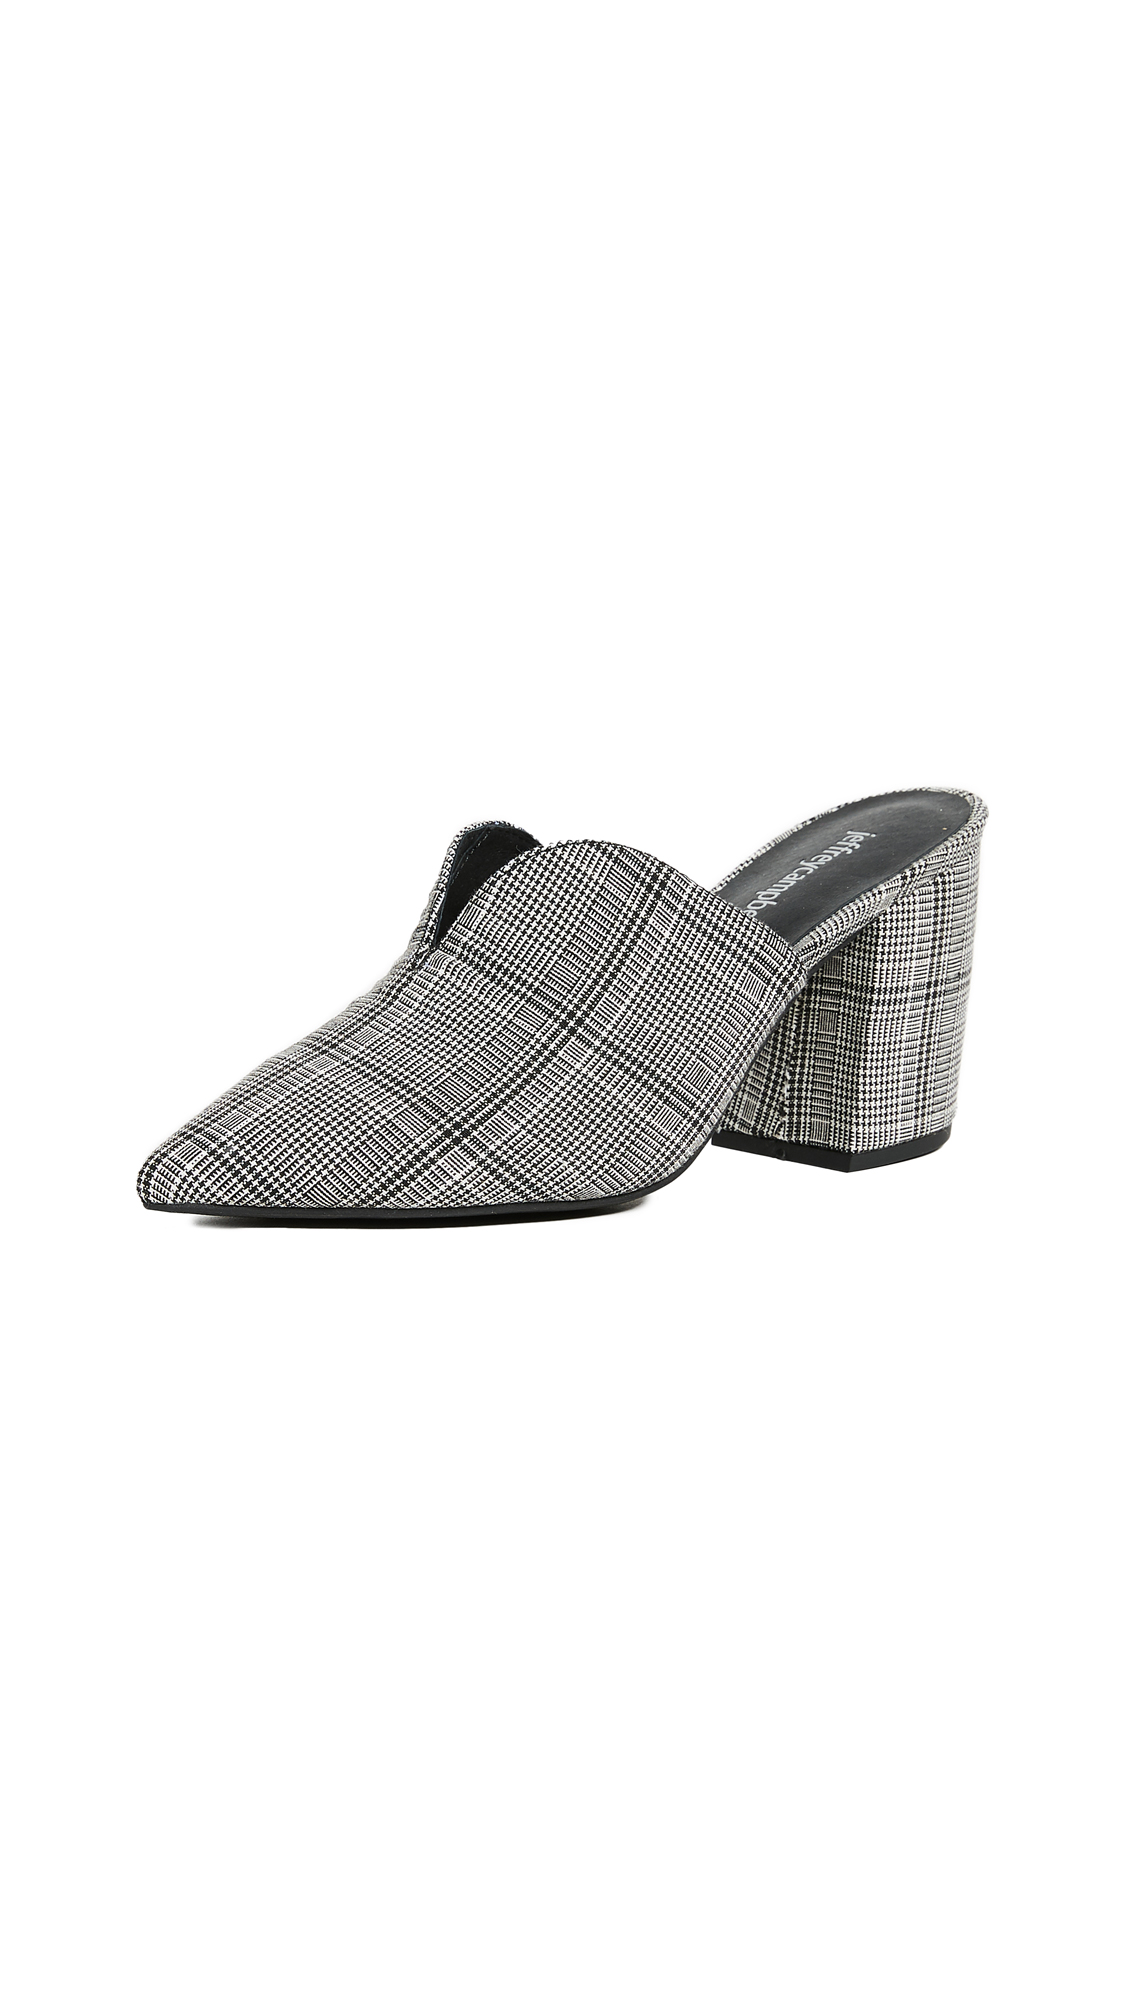 Jeffrey Campbell Complete Plaid Point Toe Pumps - Black/White